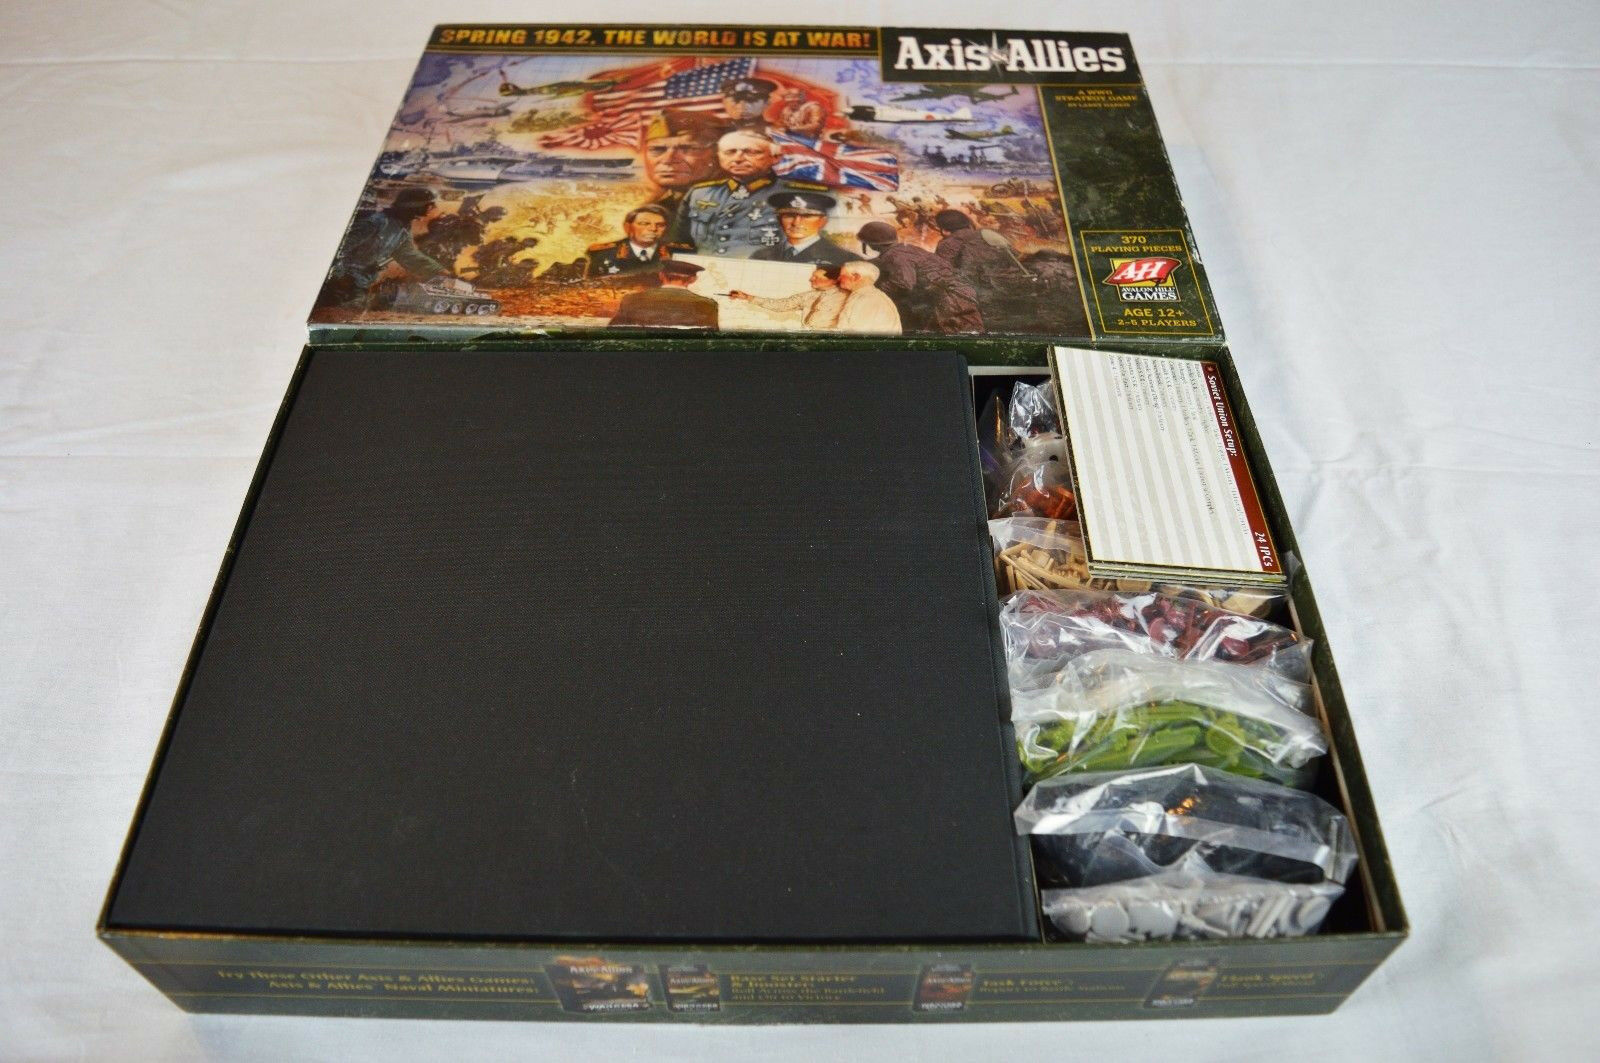 Axis & Allies 1941 Board Game A WWII Strategy Game - Complete